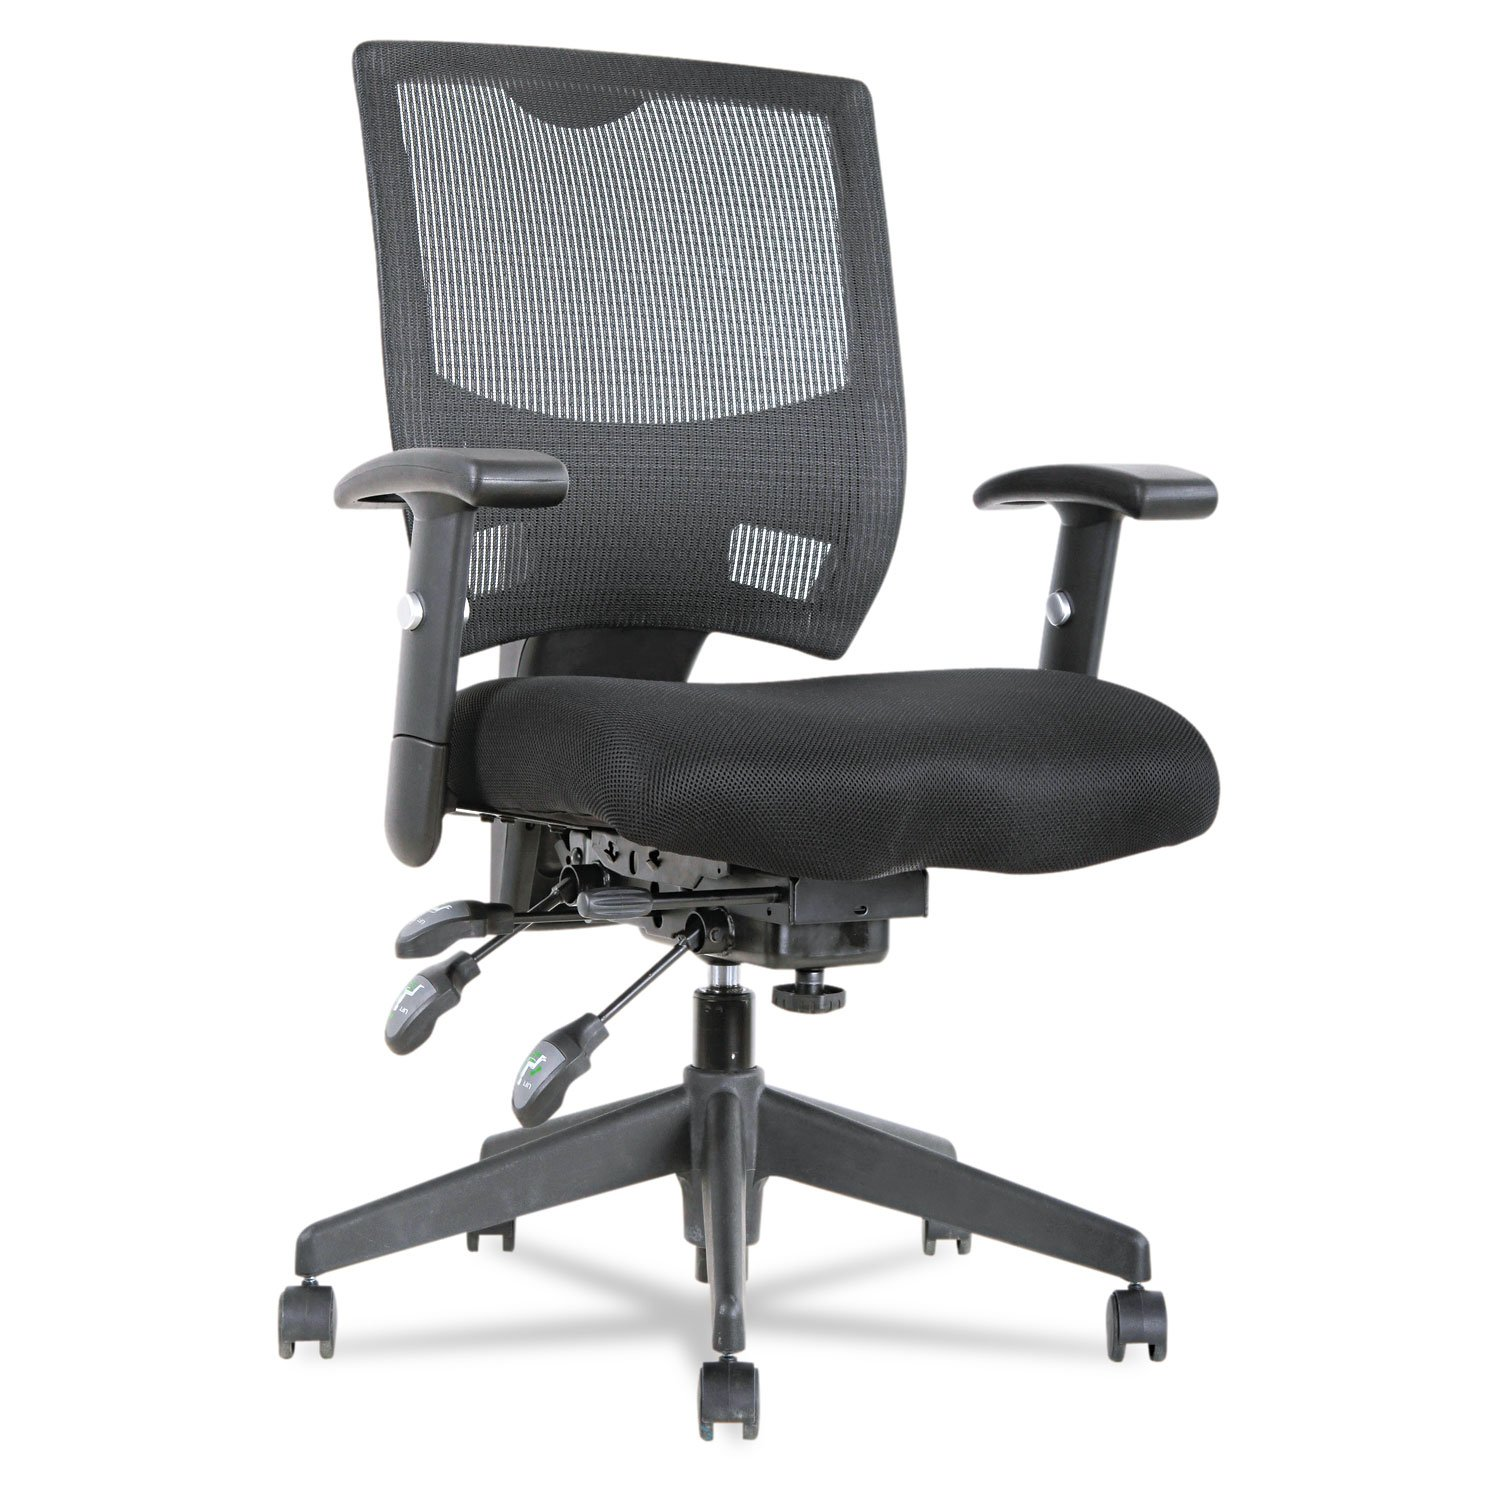 Alera - Epoch Series High Performance Multifunction Chair - Mesh Back-Seat - Black EP4217 (DMi EA